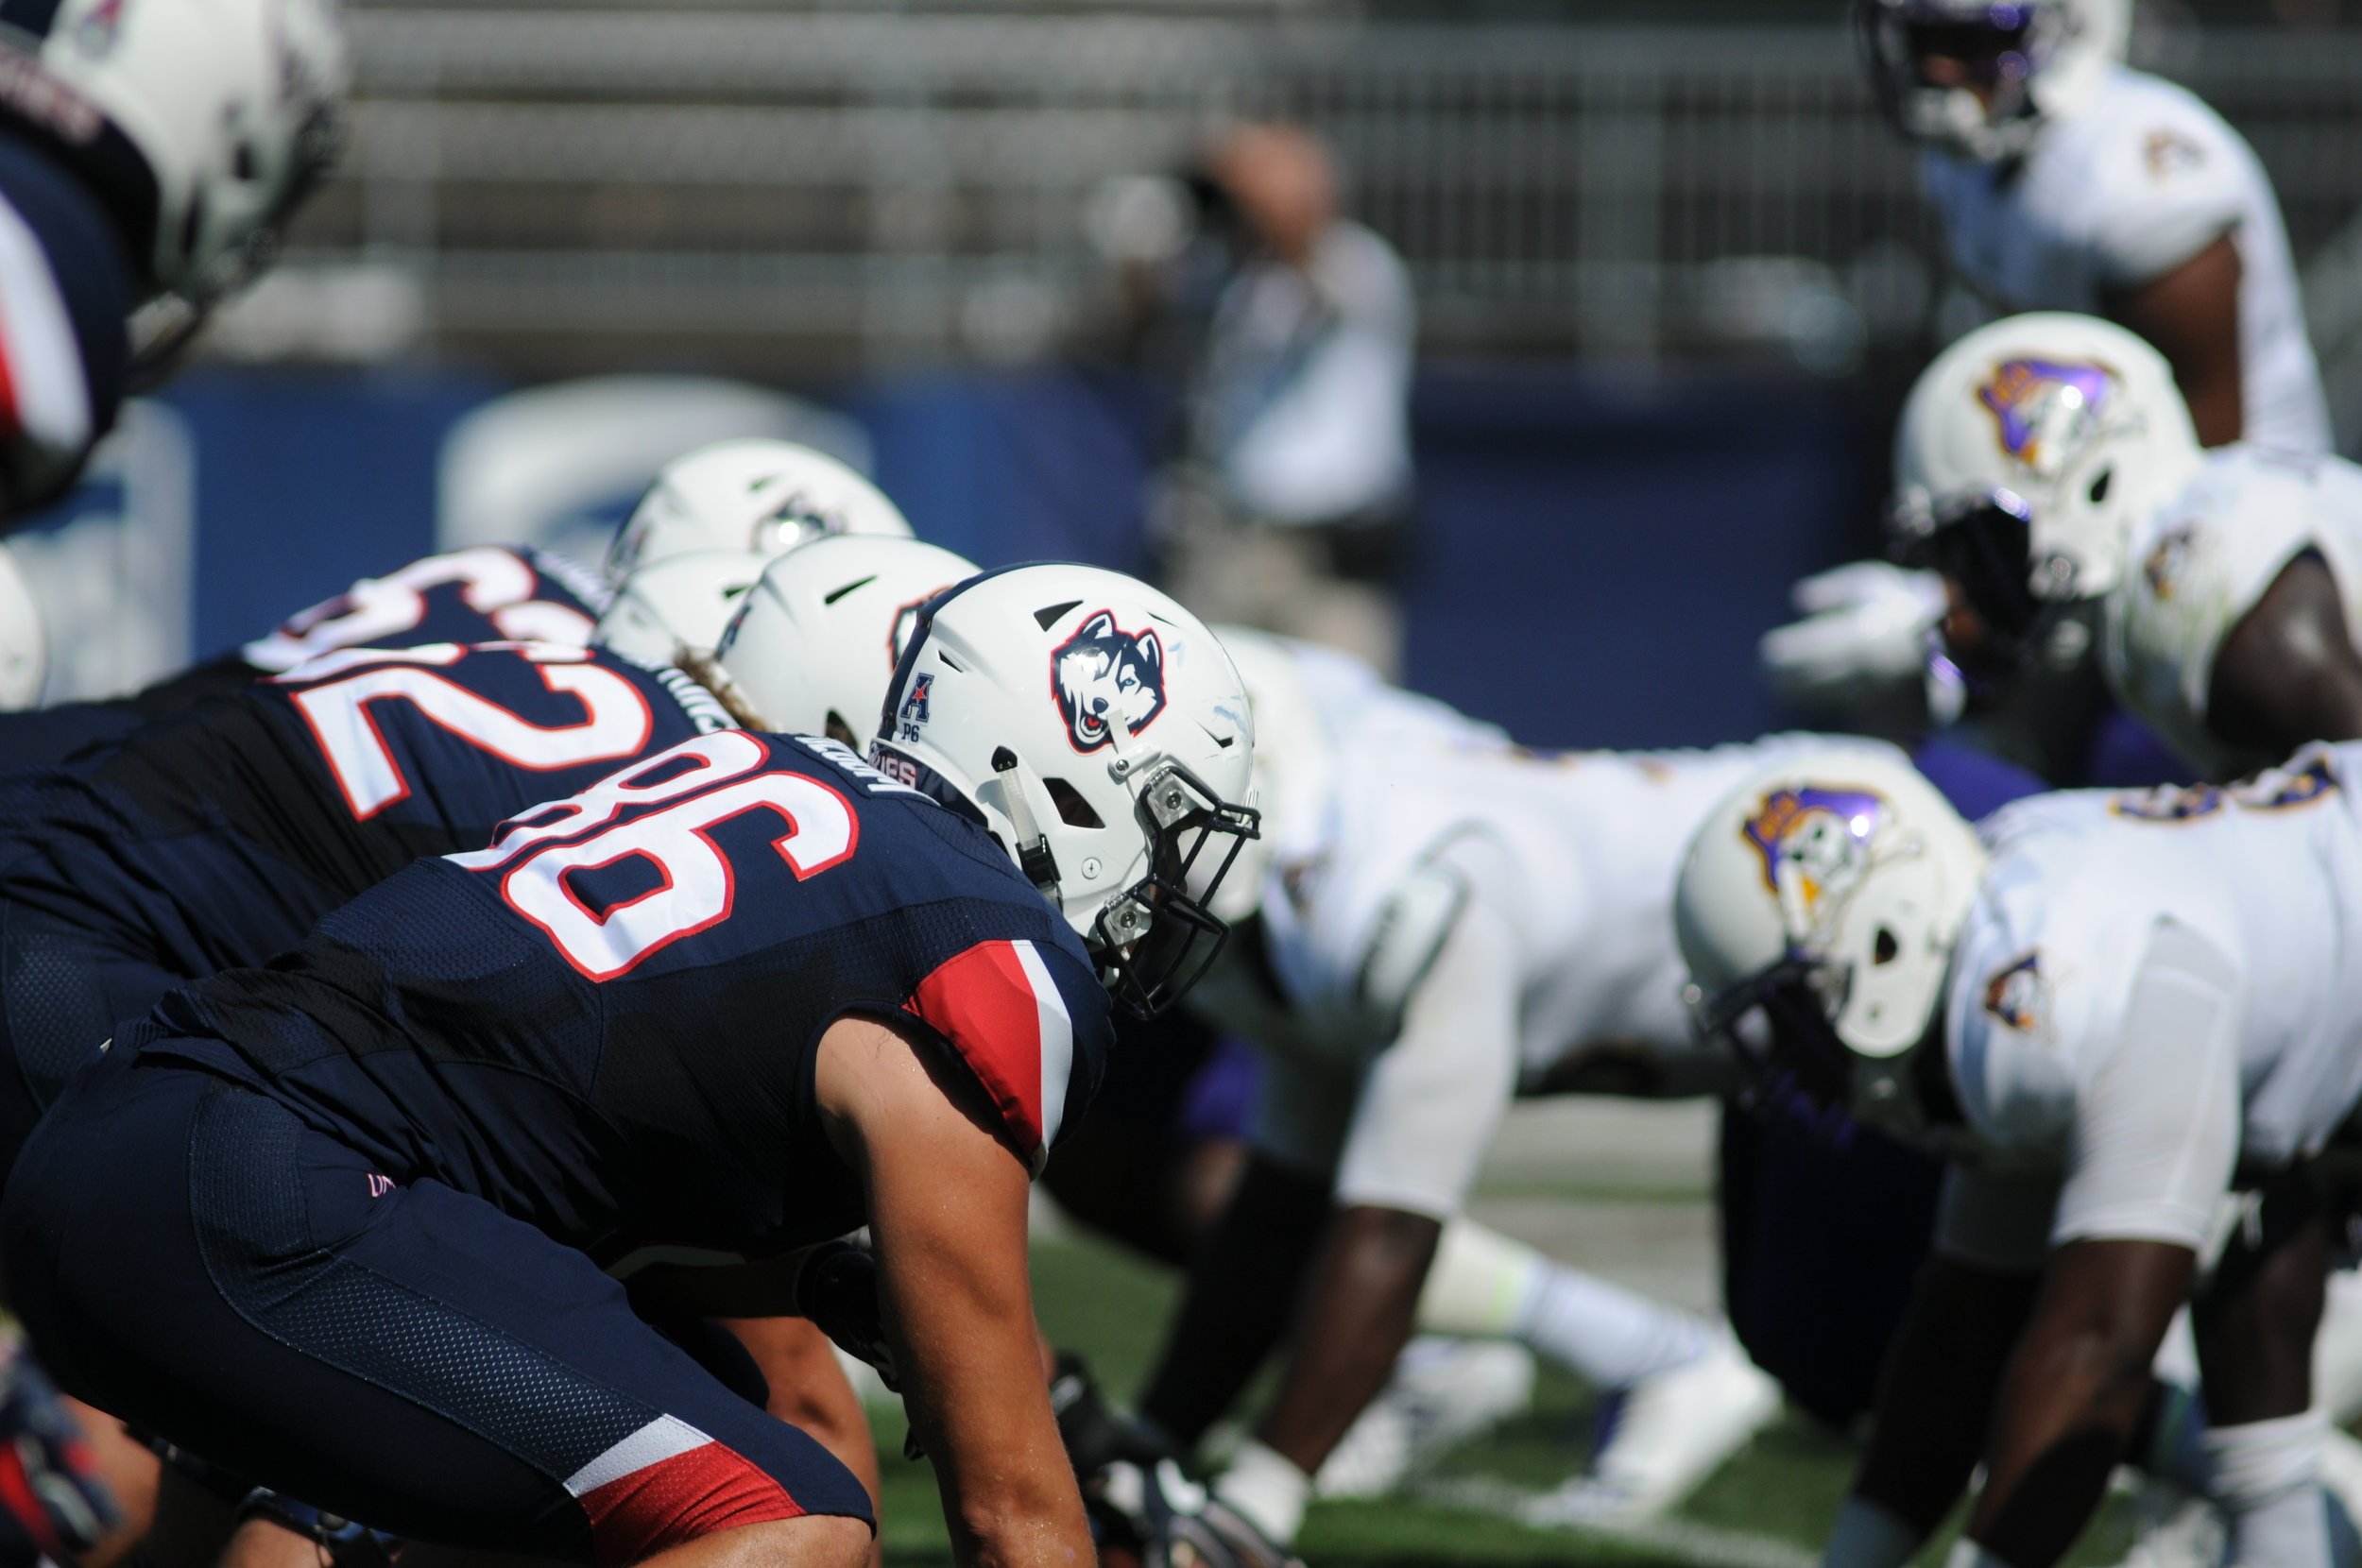 The Huskies and the Mustangs will kickoff Saturday at 4 p.m.; the game will be broadcast on ESPNEWS.(Jon Sammis/The Daily Campus)